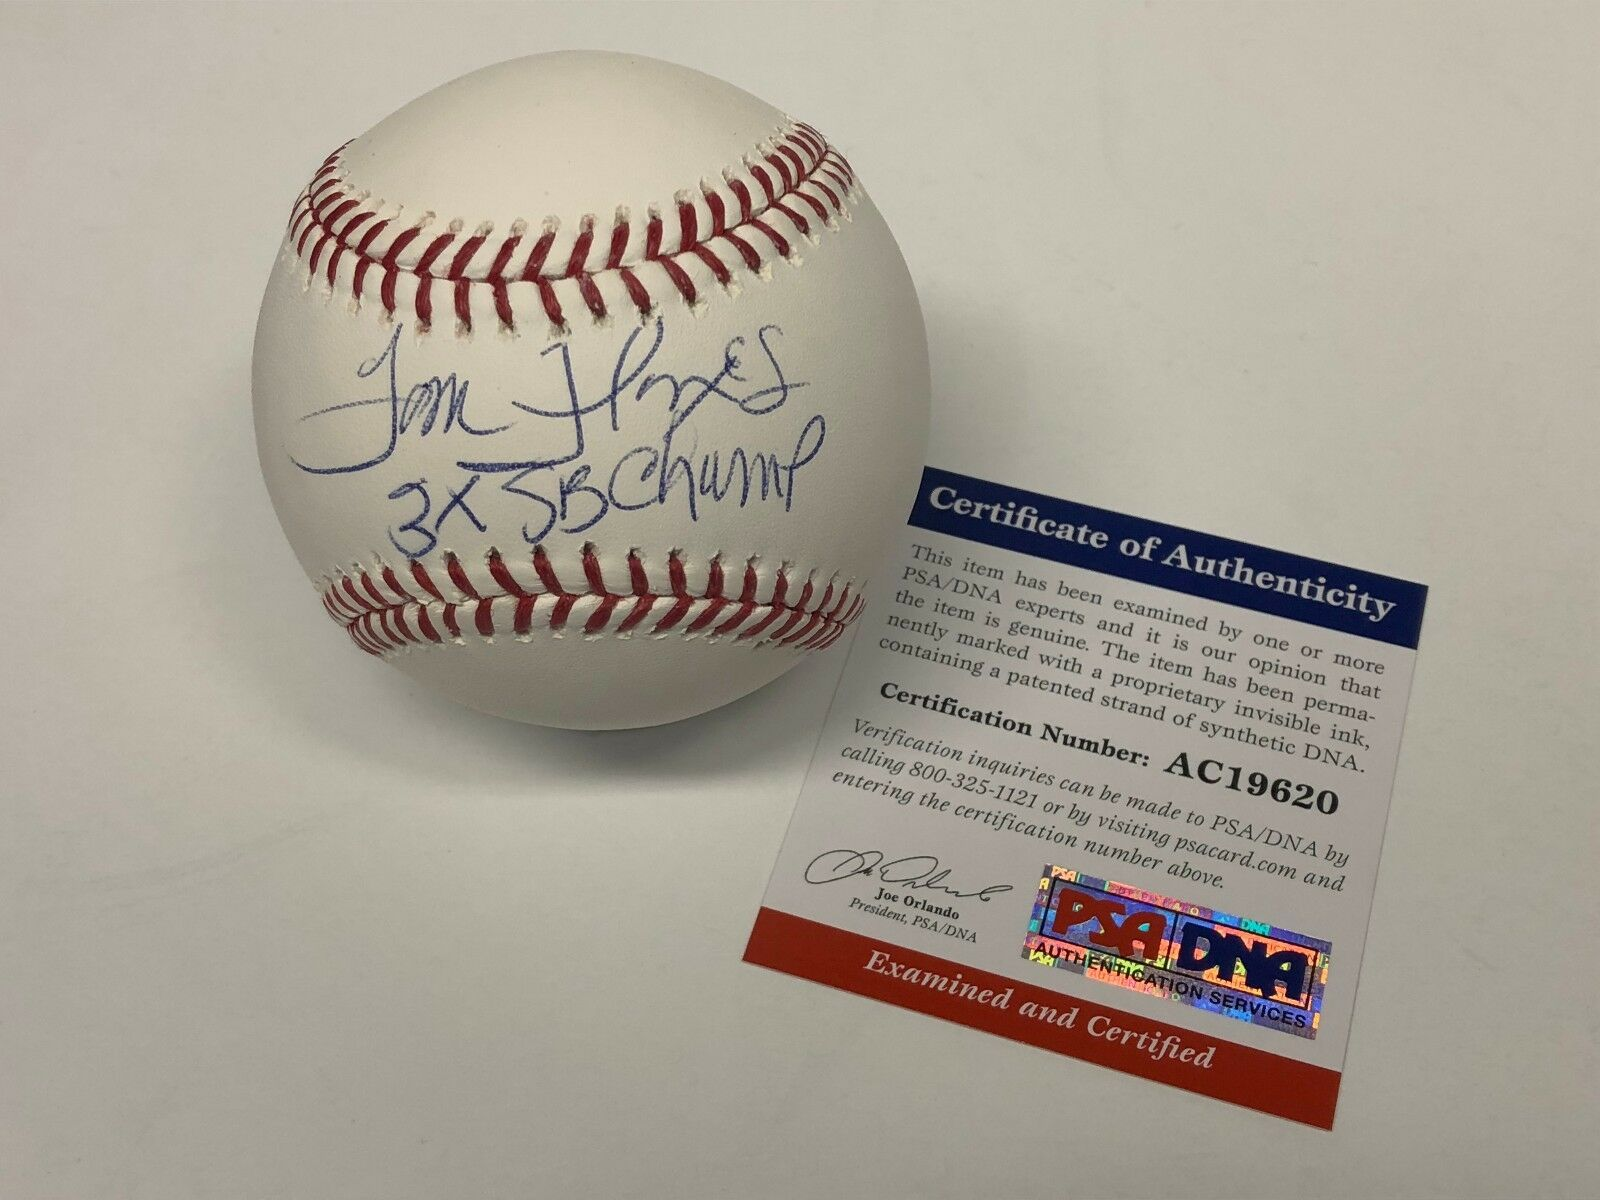 Tom Flores Signed Major League Baseball